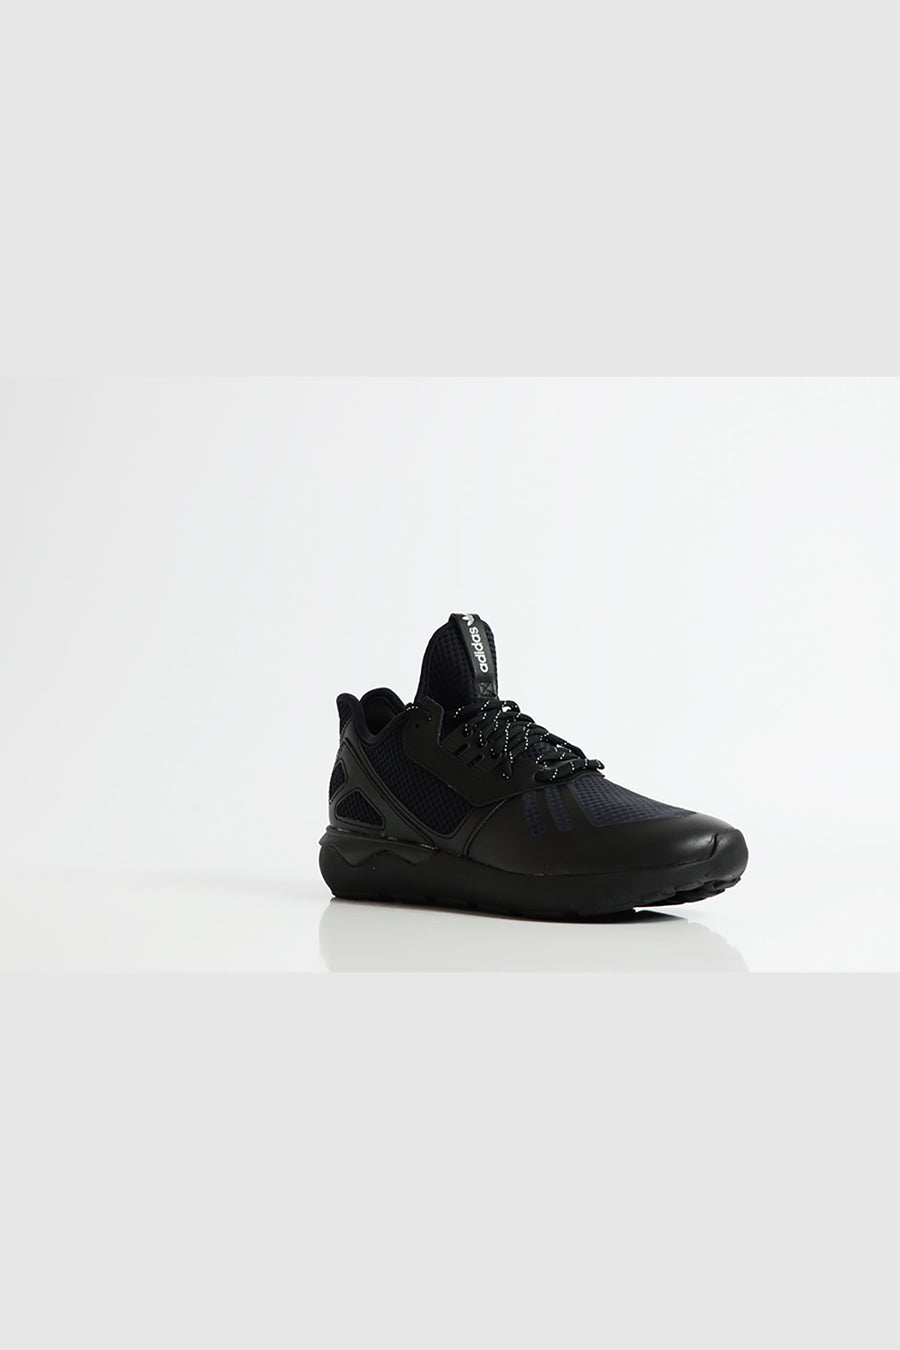 Adidas - Tubular Runner (Core Black)